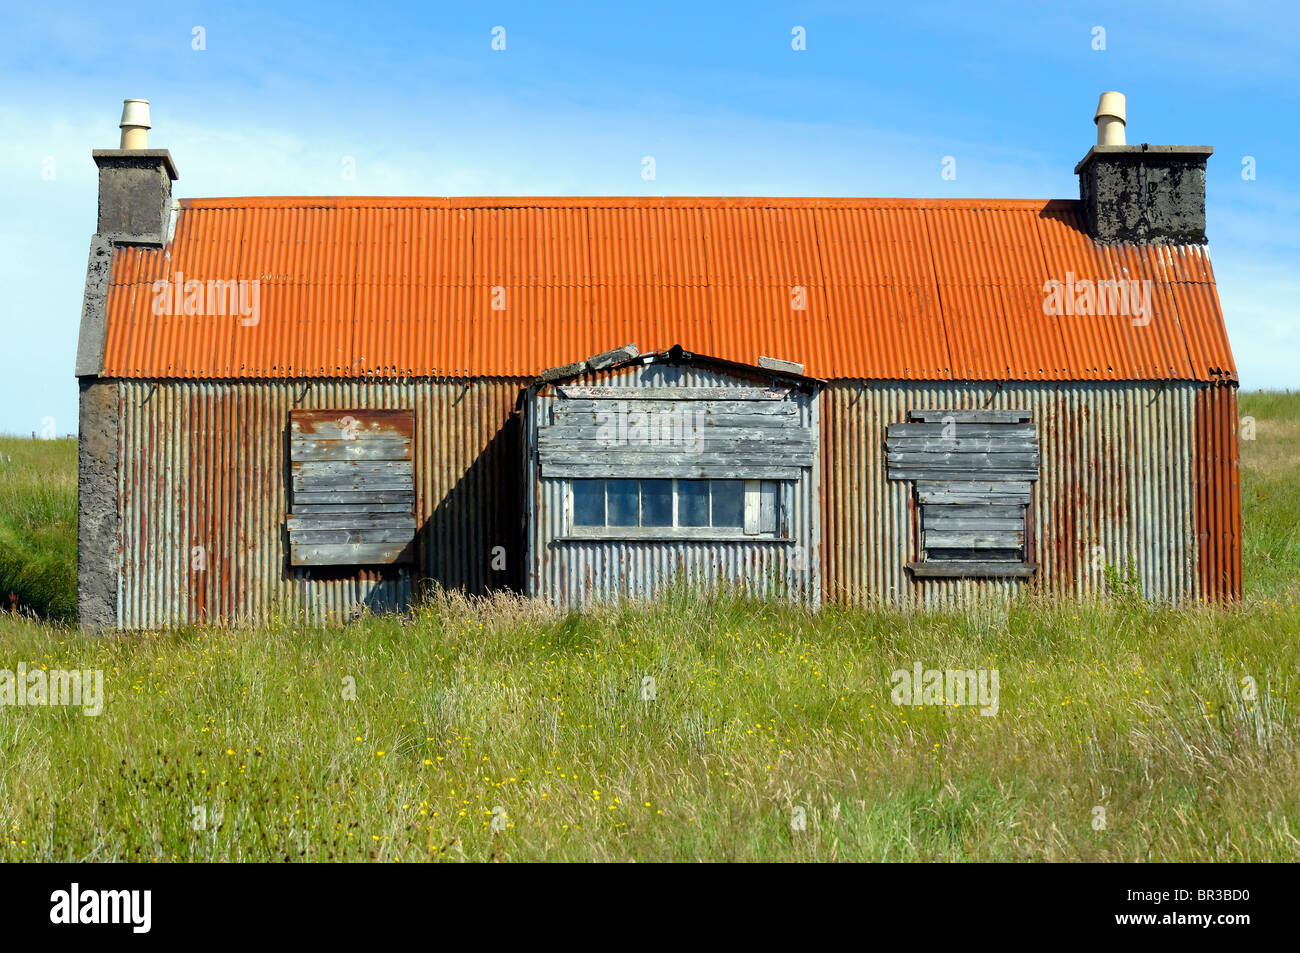 Old Corrugated Iron Building Stock Photo Royalty Free